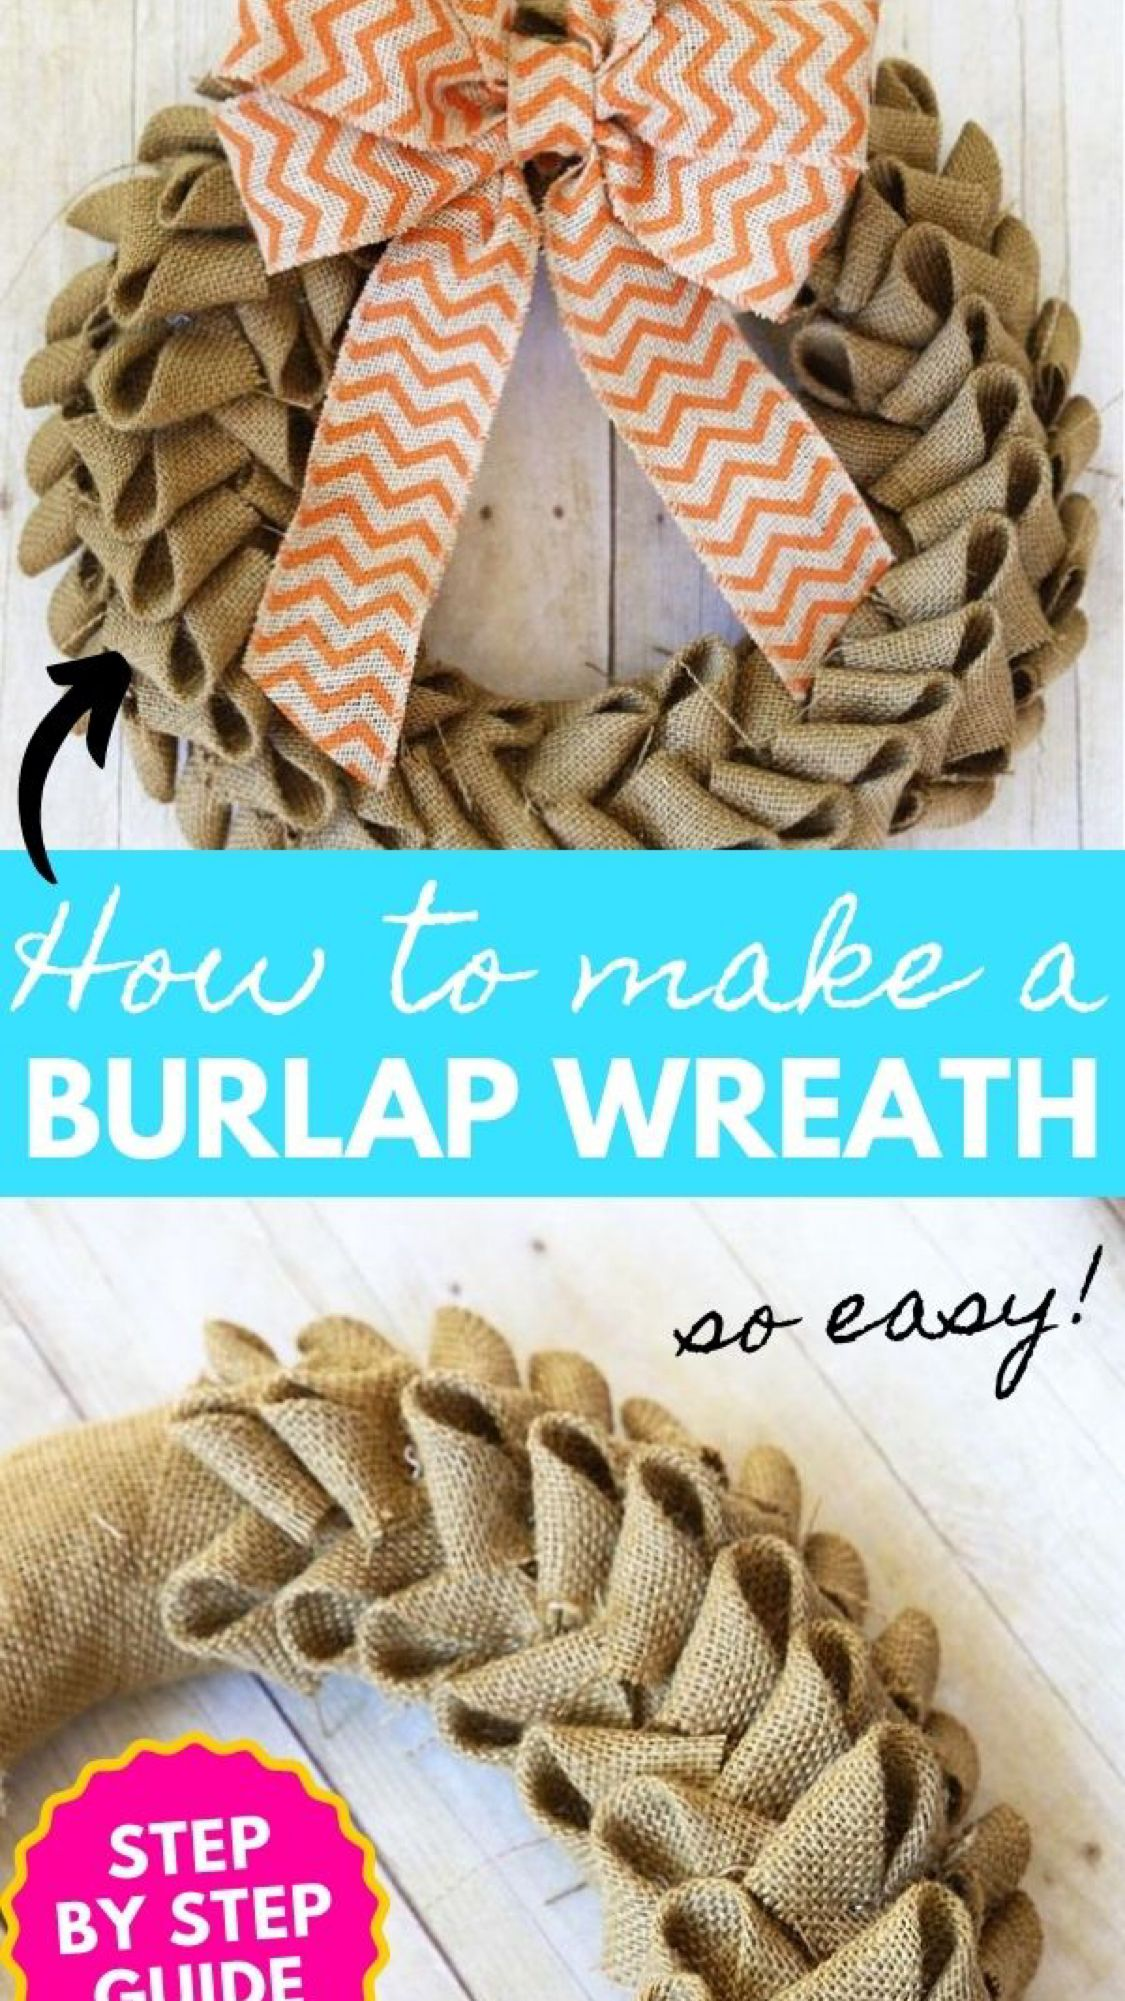 How To Make A Burlap Wreath Tutorial {EASY STEP BY